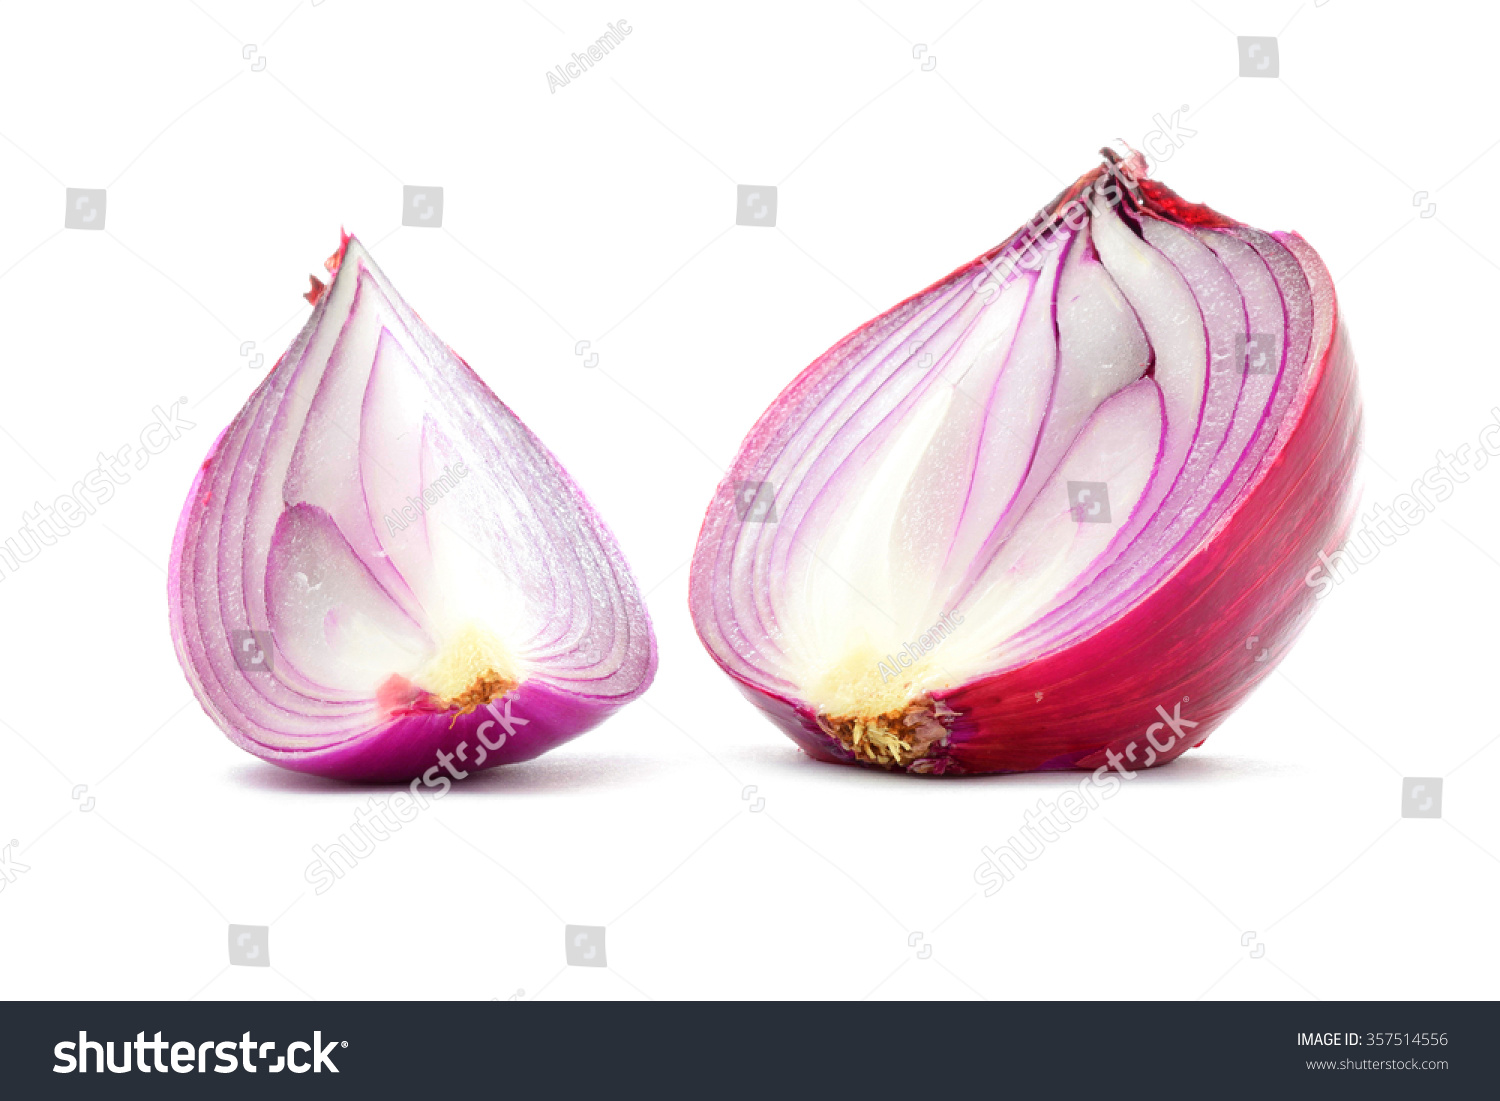 Interior designs medium size vertically growing onions growing onions - Red Onion Bulb Half And Quater Cut Vertical Longitudinal Section